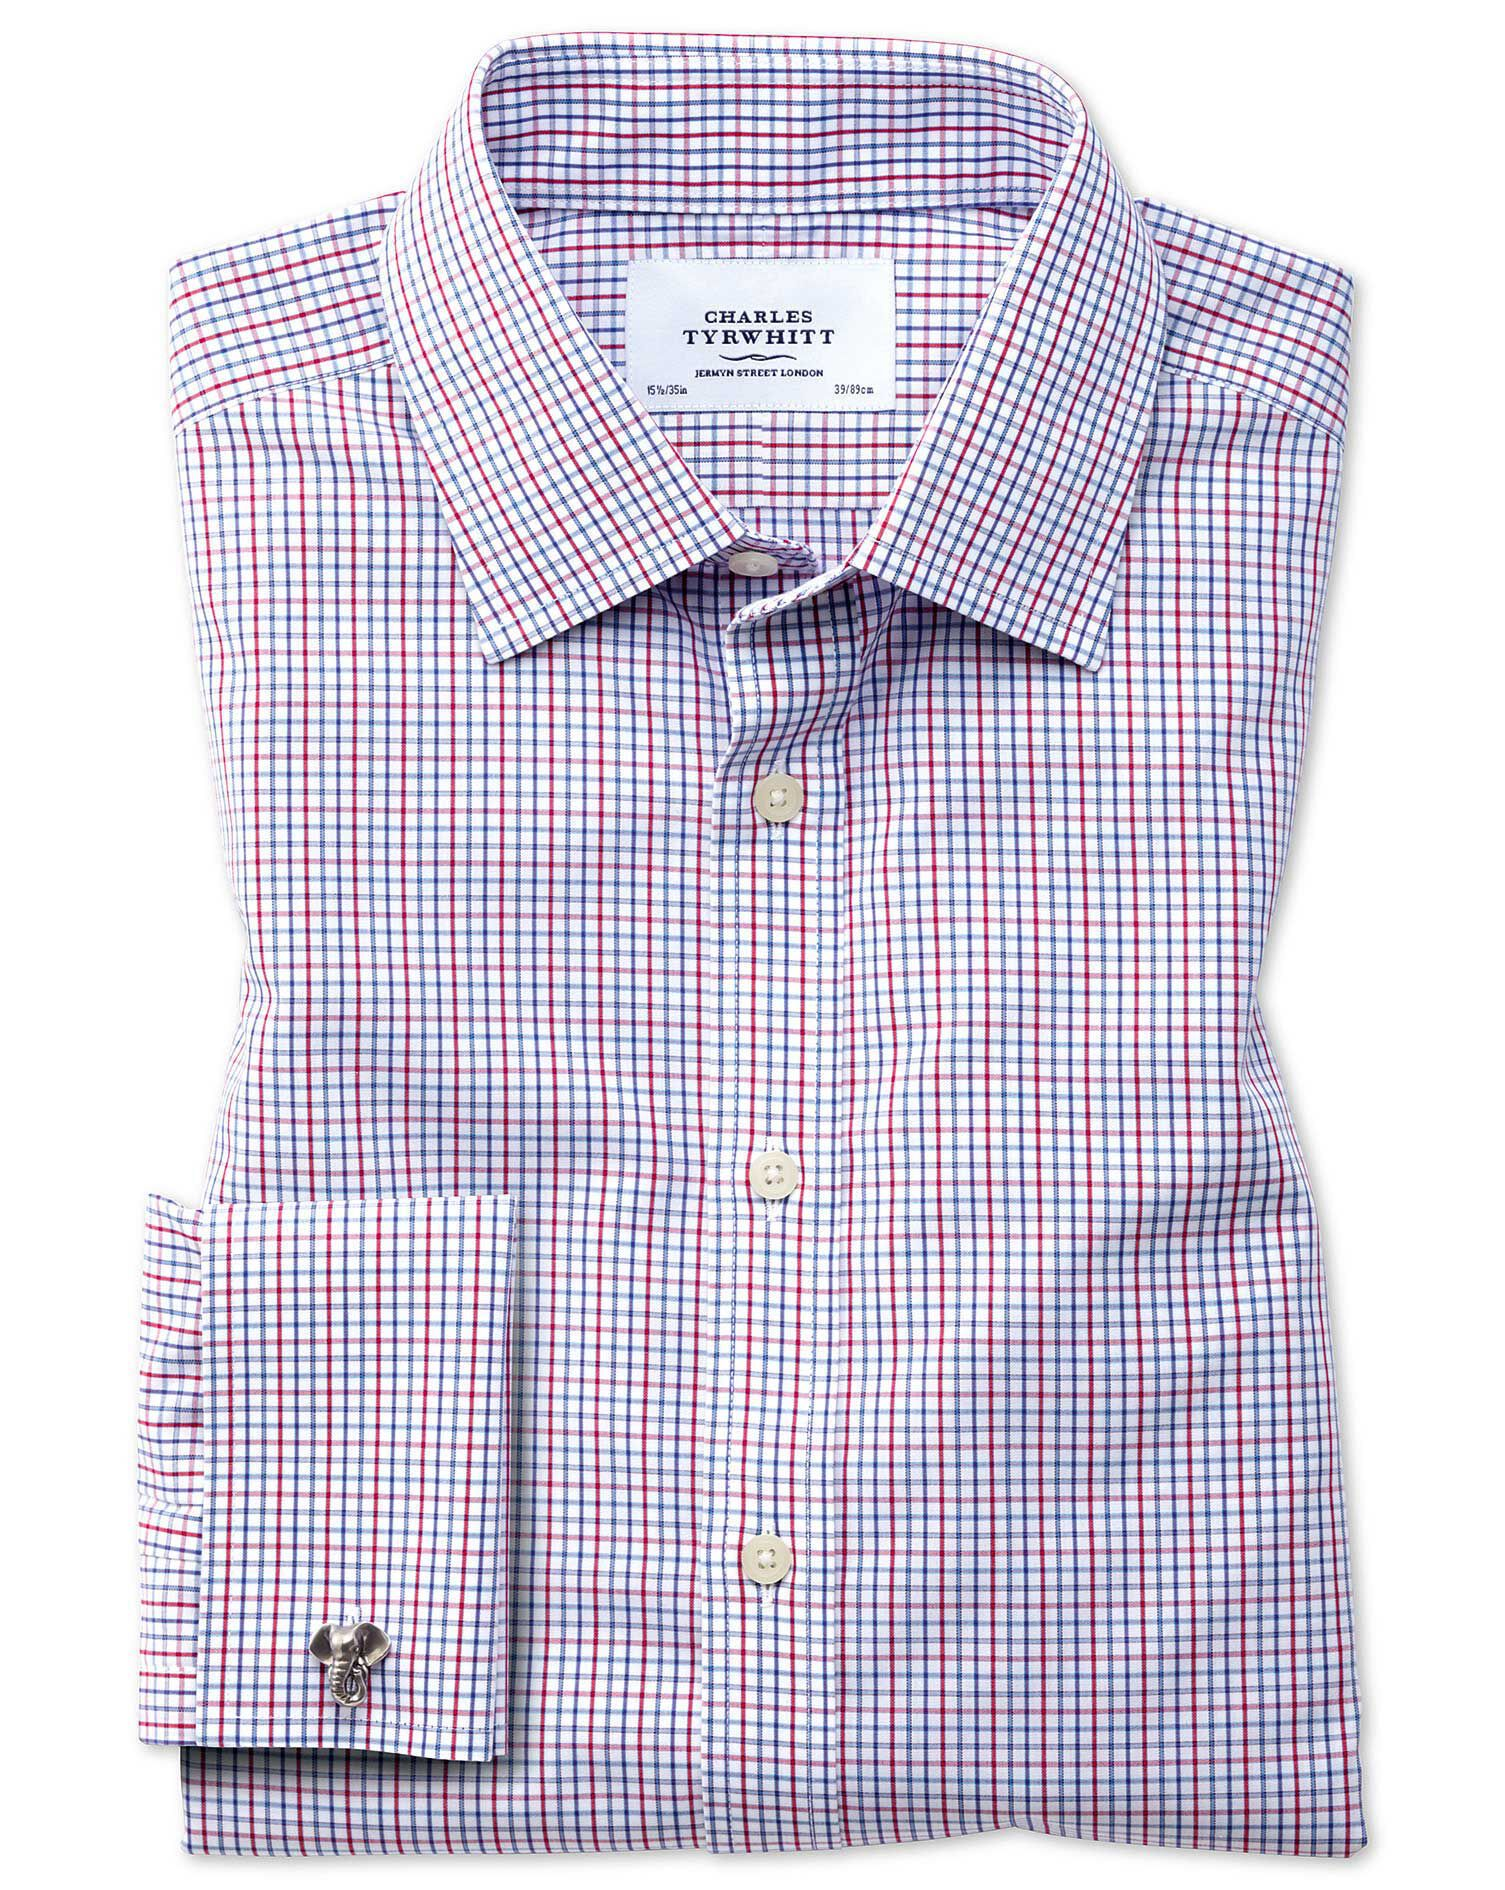 Slim Fit Non-Iron Multi Grid Check Cotton Formal Shirt Single Cuff Size 15.5/32 by Charles Tyrwhitt